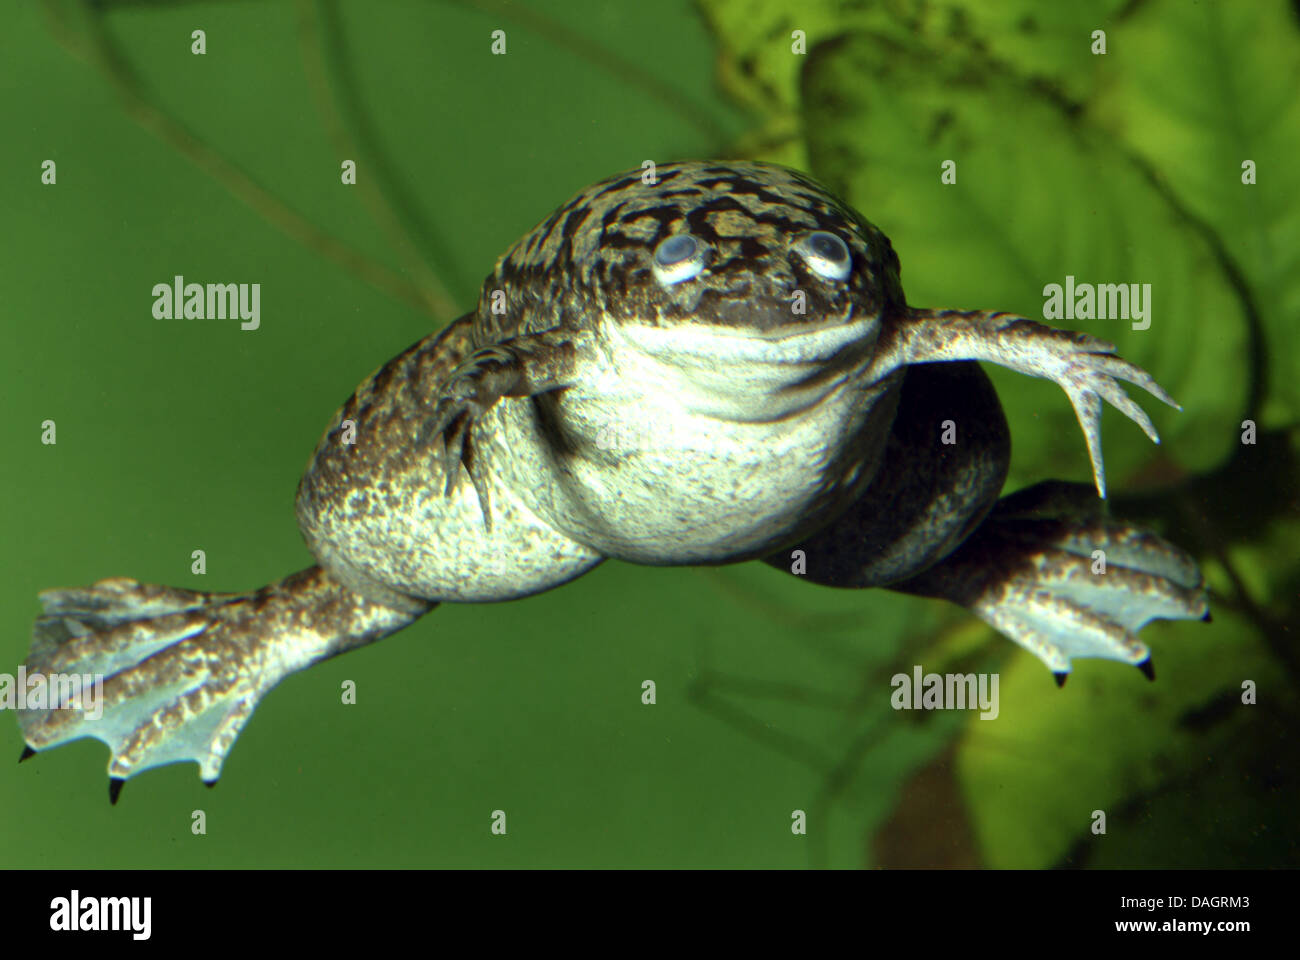 african clawed frog xenopus laevis swimming stock photo 58147491 rh alamy com Female African Clawed Frog African Clawed Frog Tadpoles